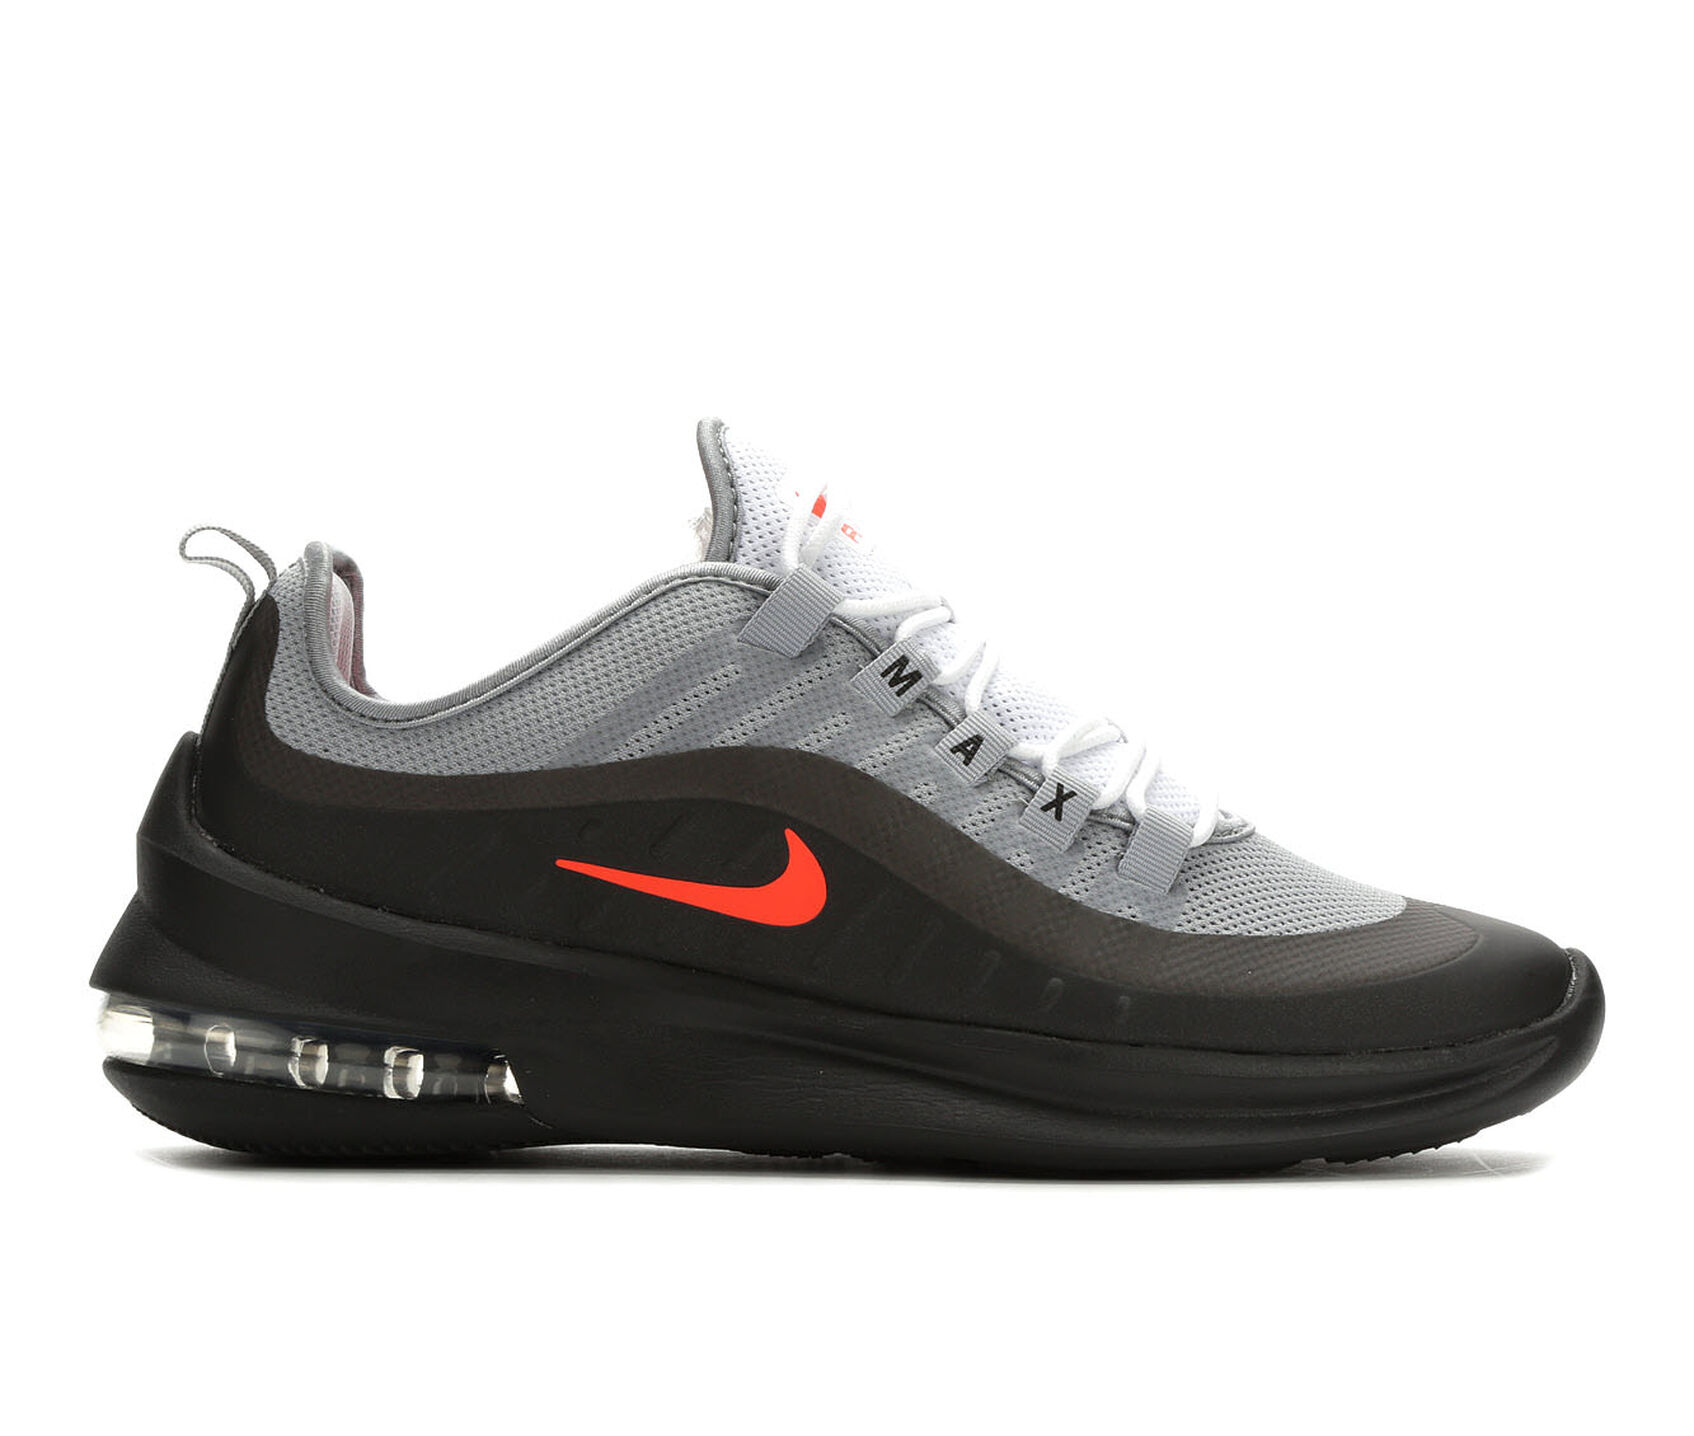 official photos c7992 09148 ... Nike Air Max Axis Running Shoes. Previous